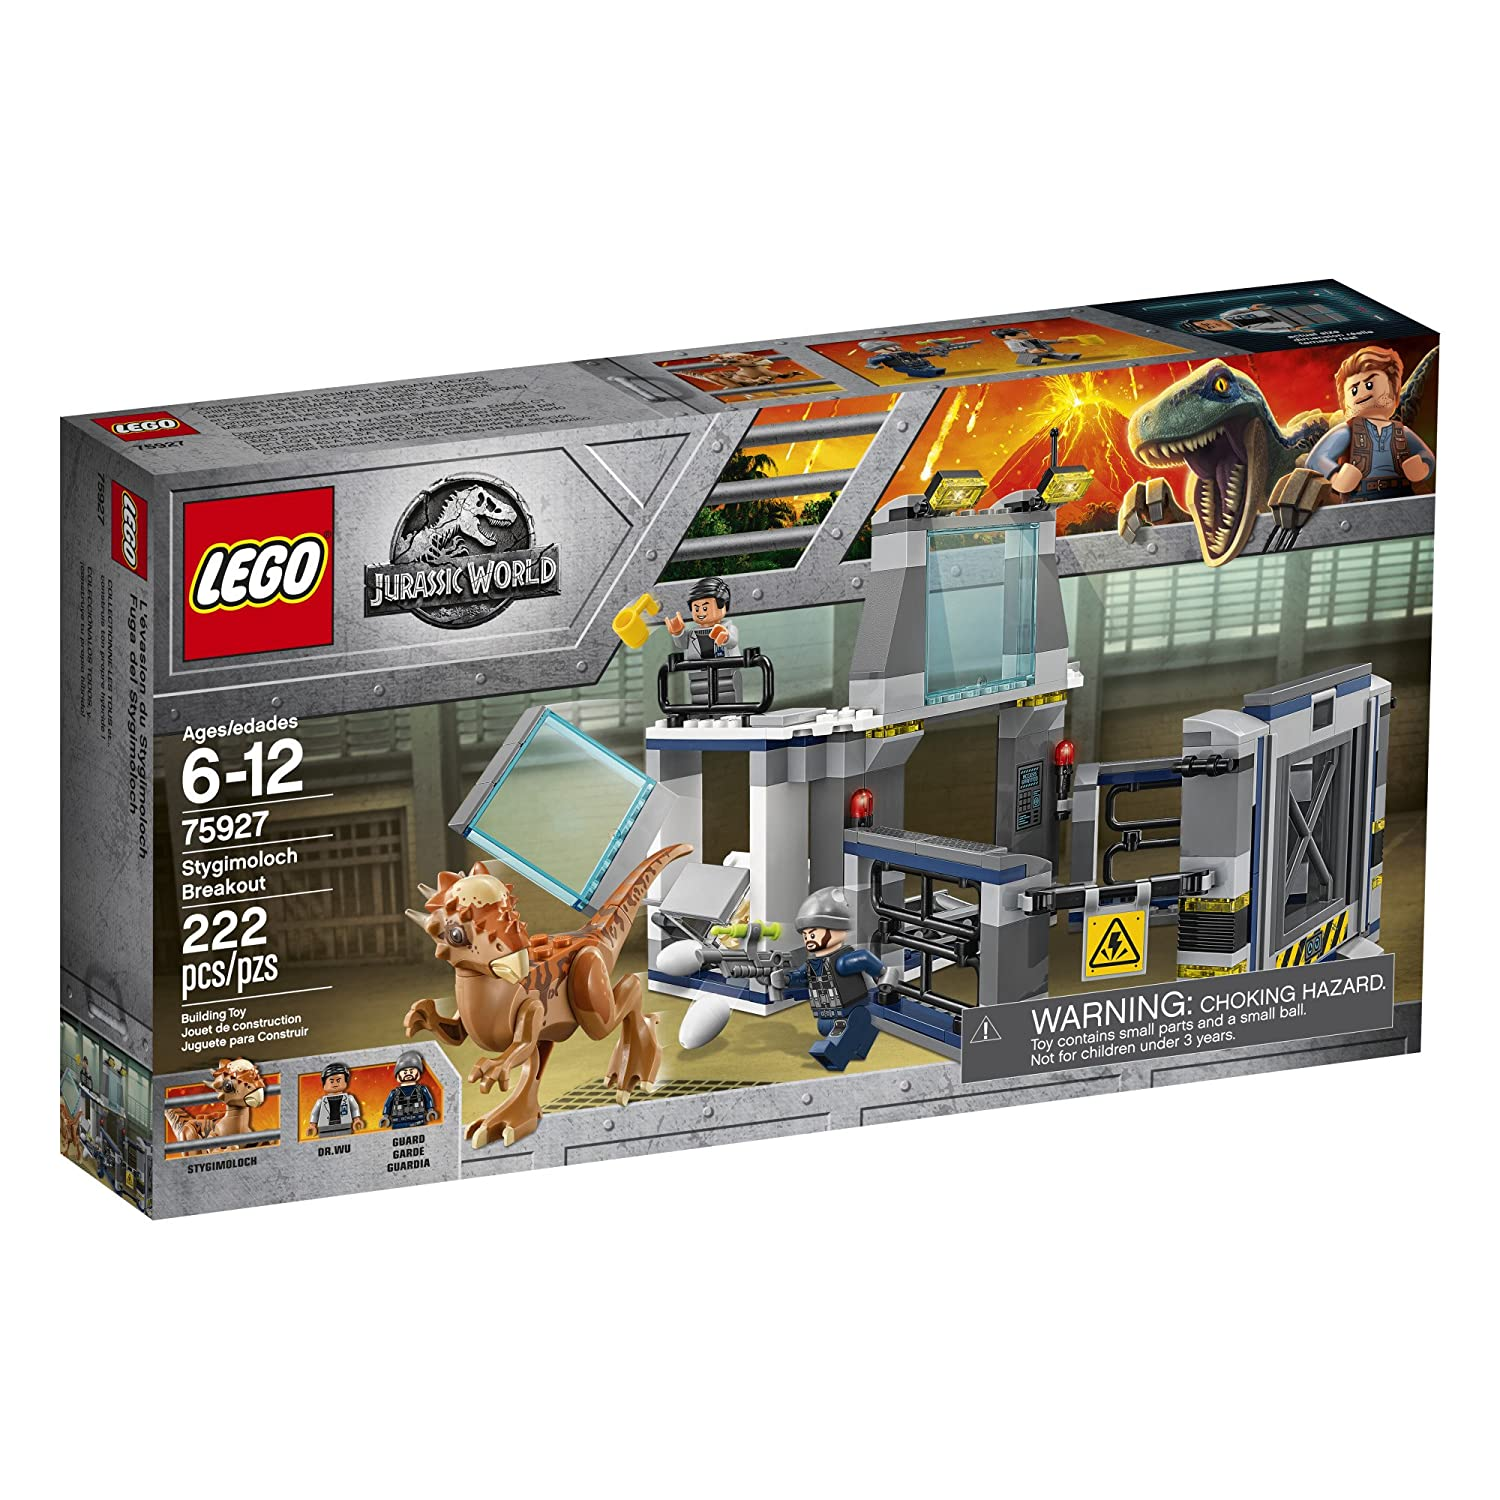 Lego jurassic world fallen kingdom sets available on - Jurasic park lego ...